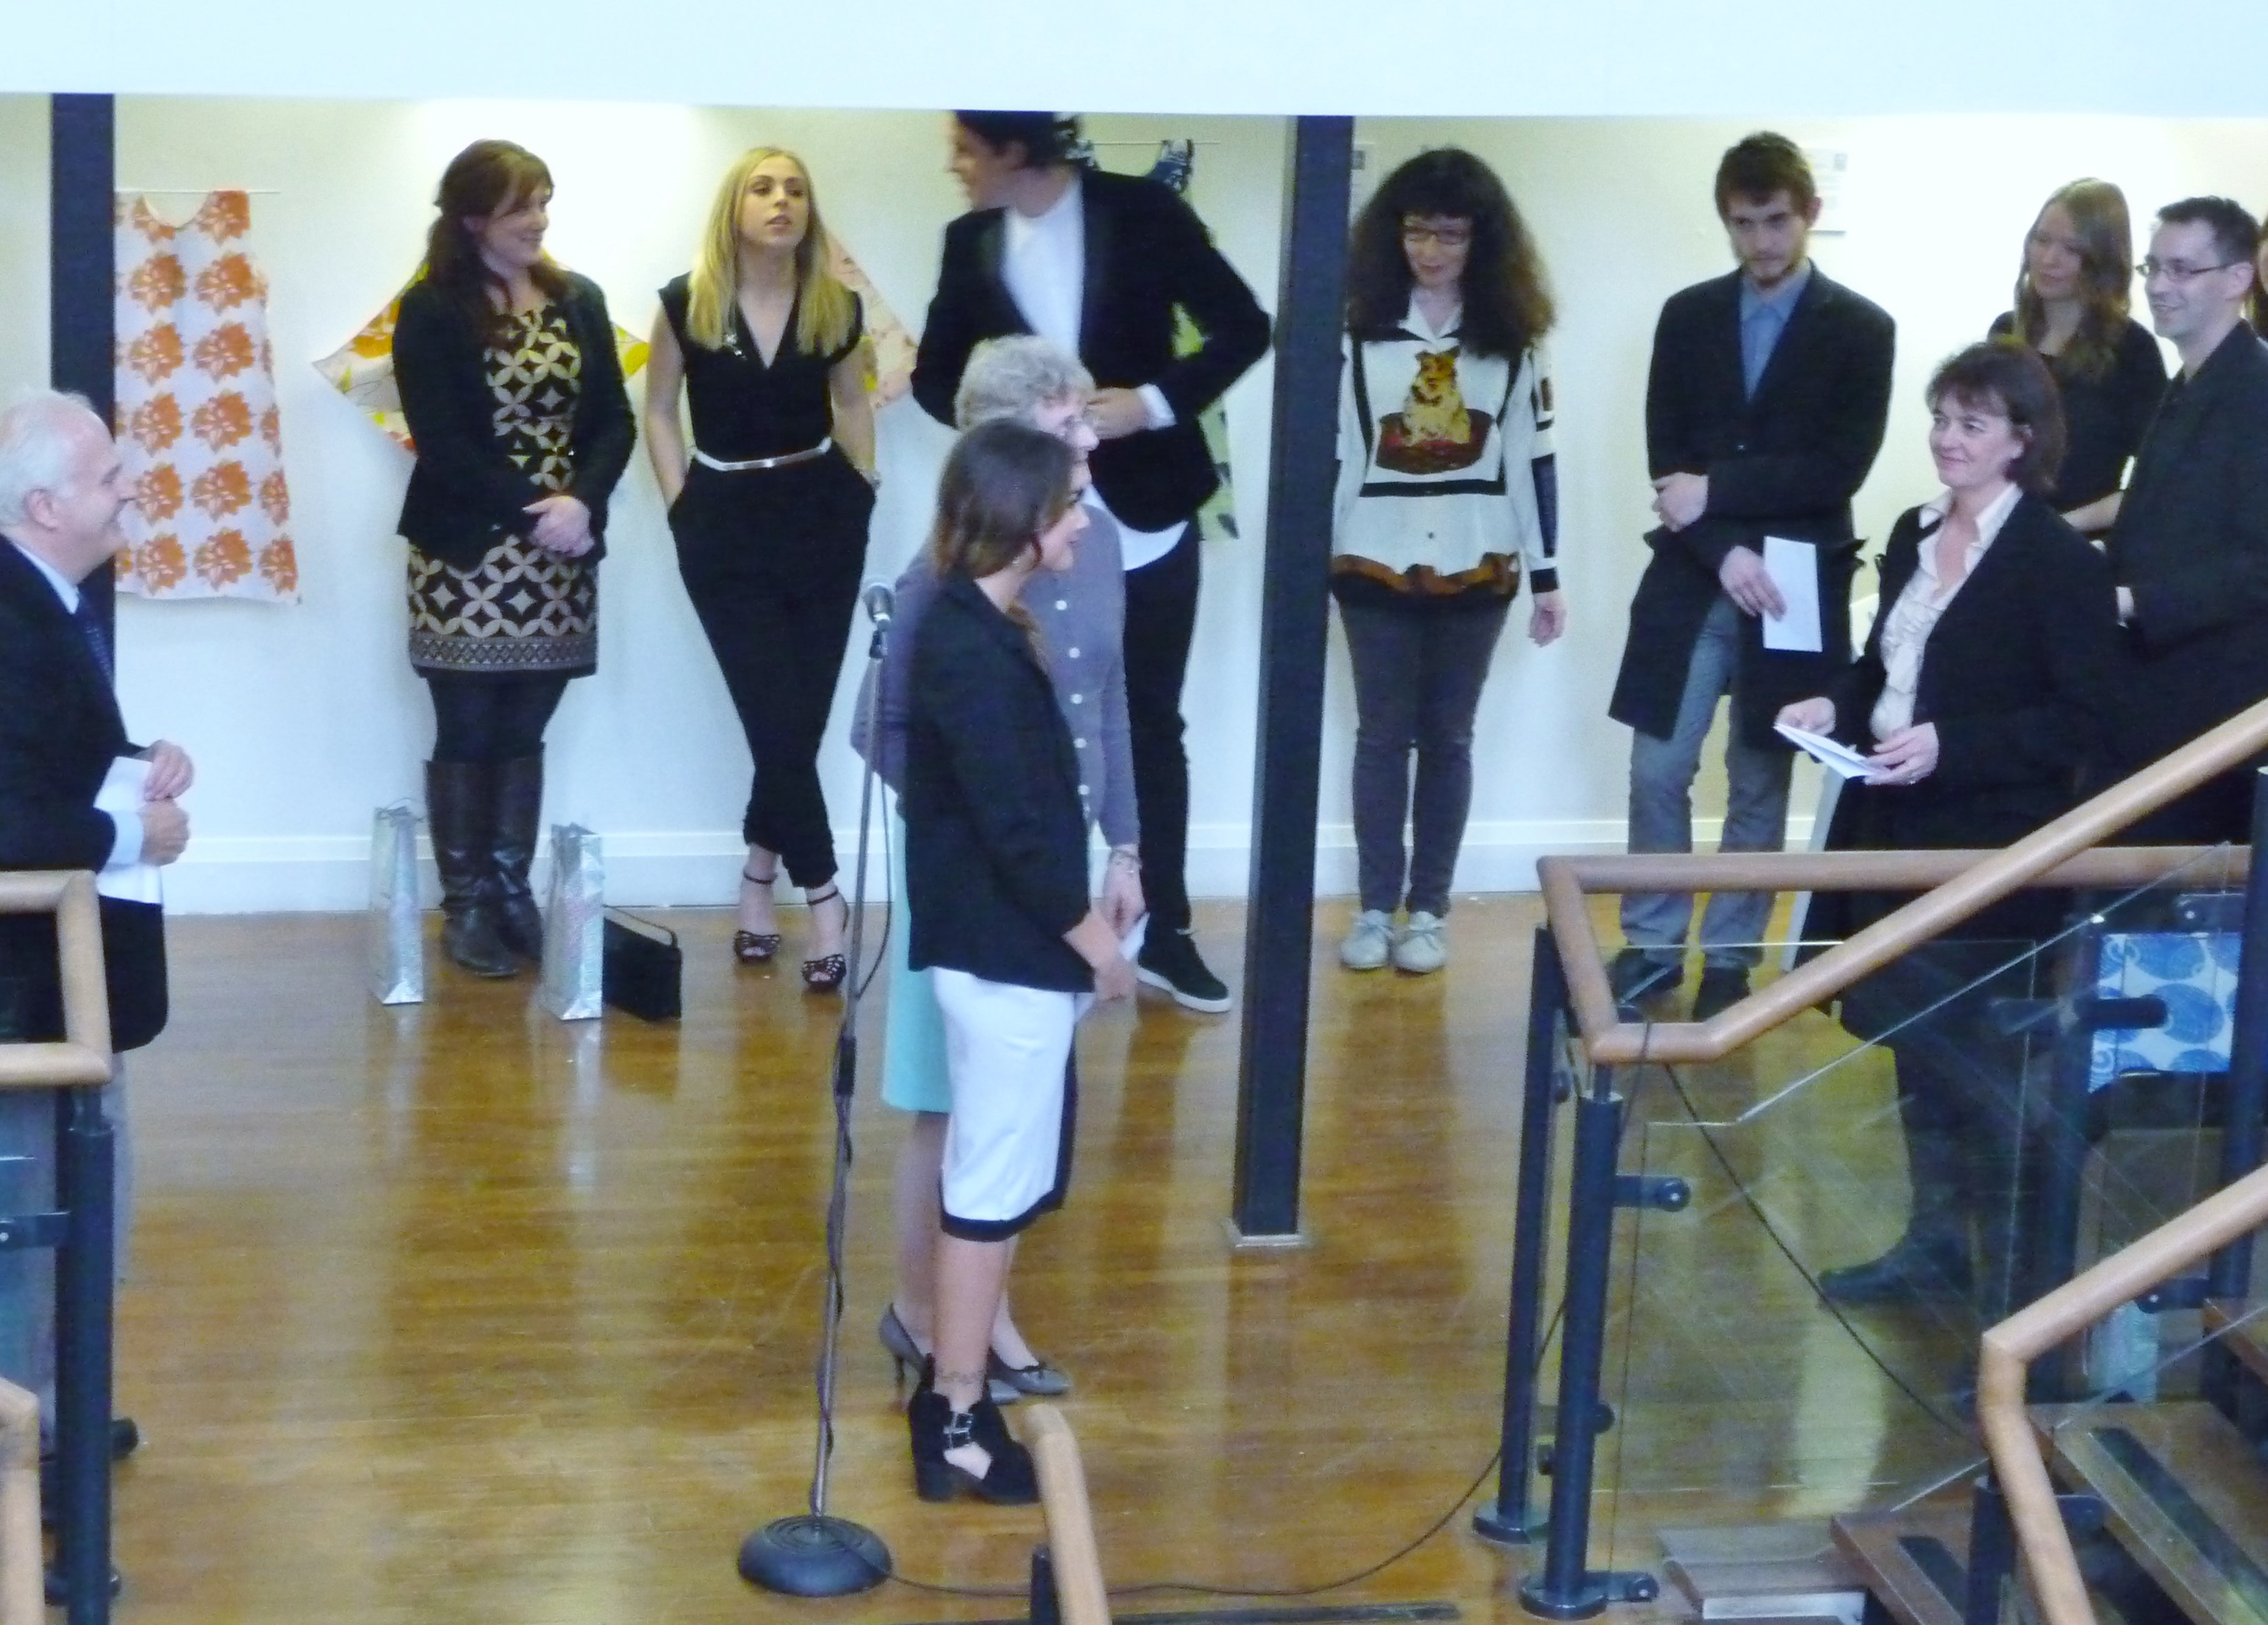 Kim Parkman presenting a prize to Chelsea Smith on behalf of Liverpool Women's Hospital at Liverpool Hope Univ Art Degree Show 2014